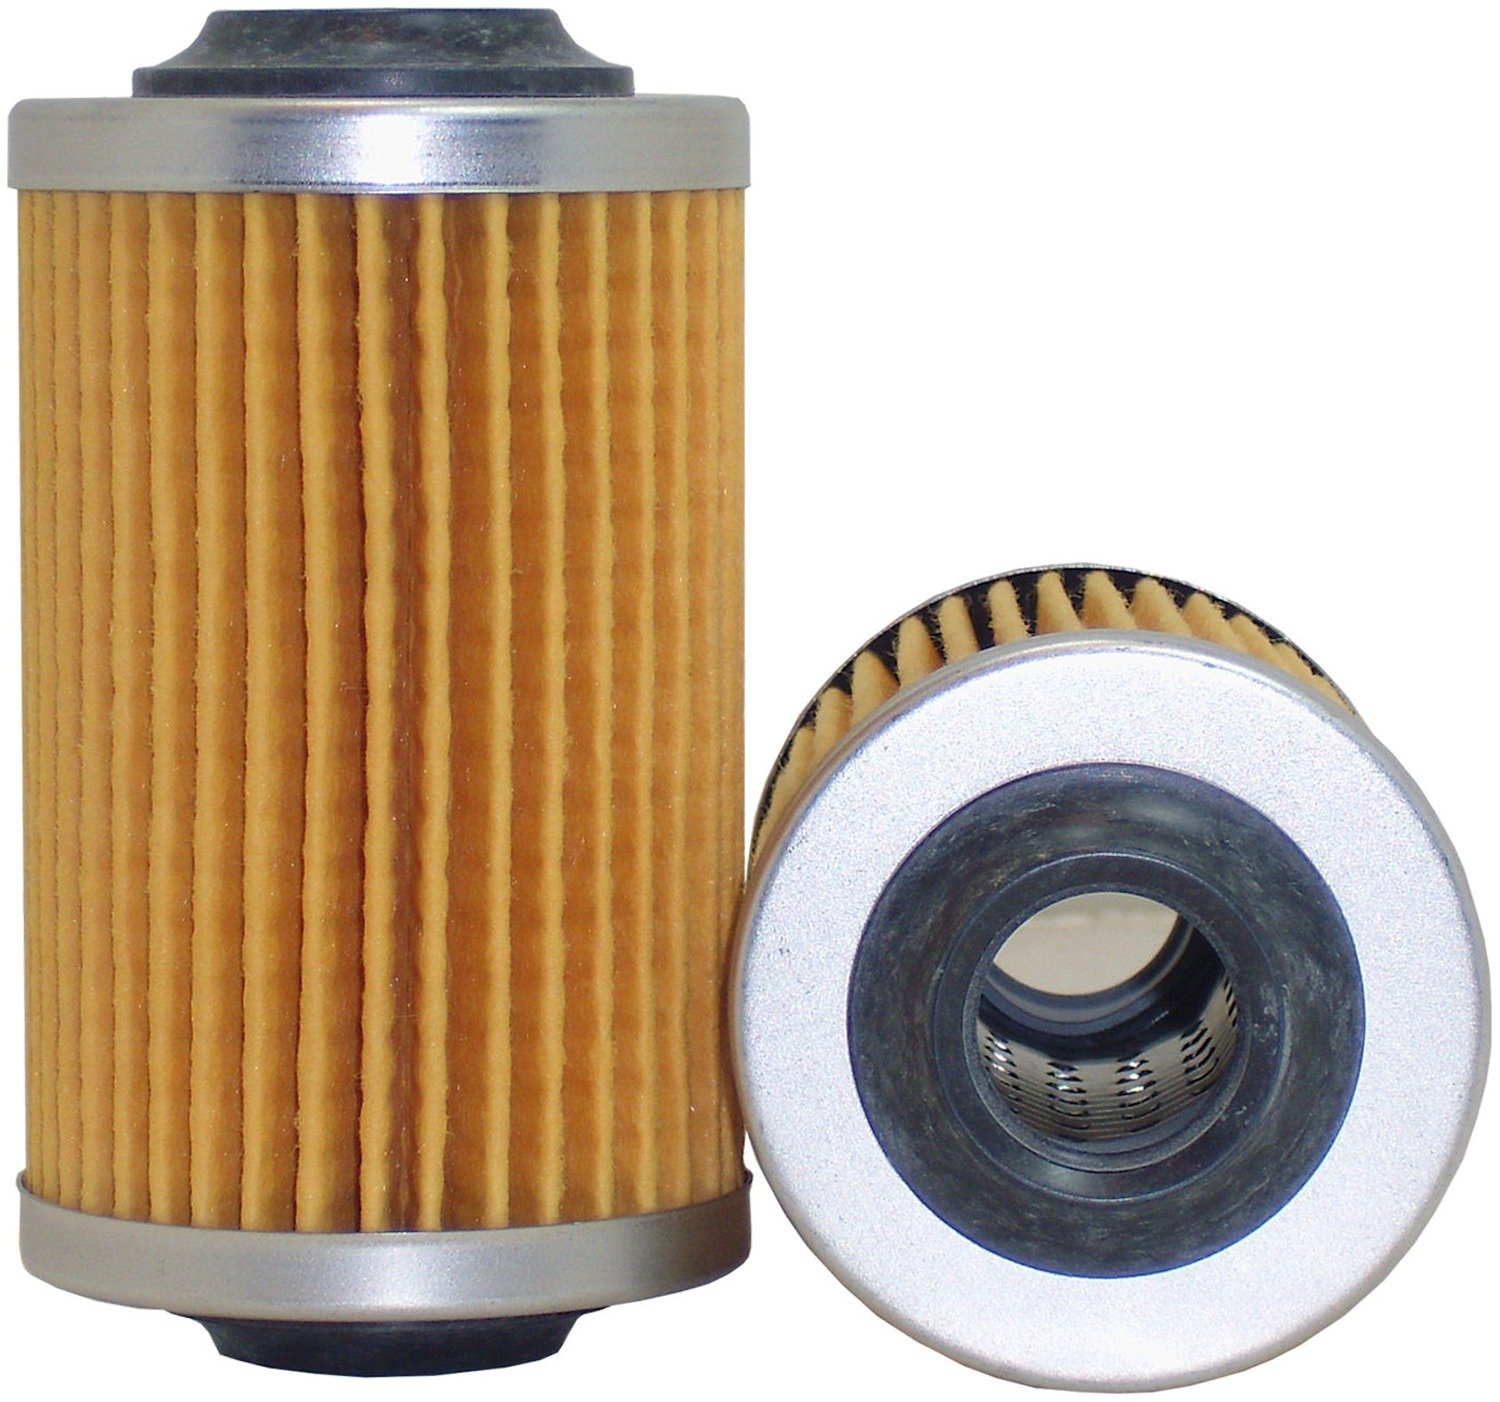 Mobil 1 M1C-254A Extended Performance Oil Filter, 2 Pack by Mobil 1